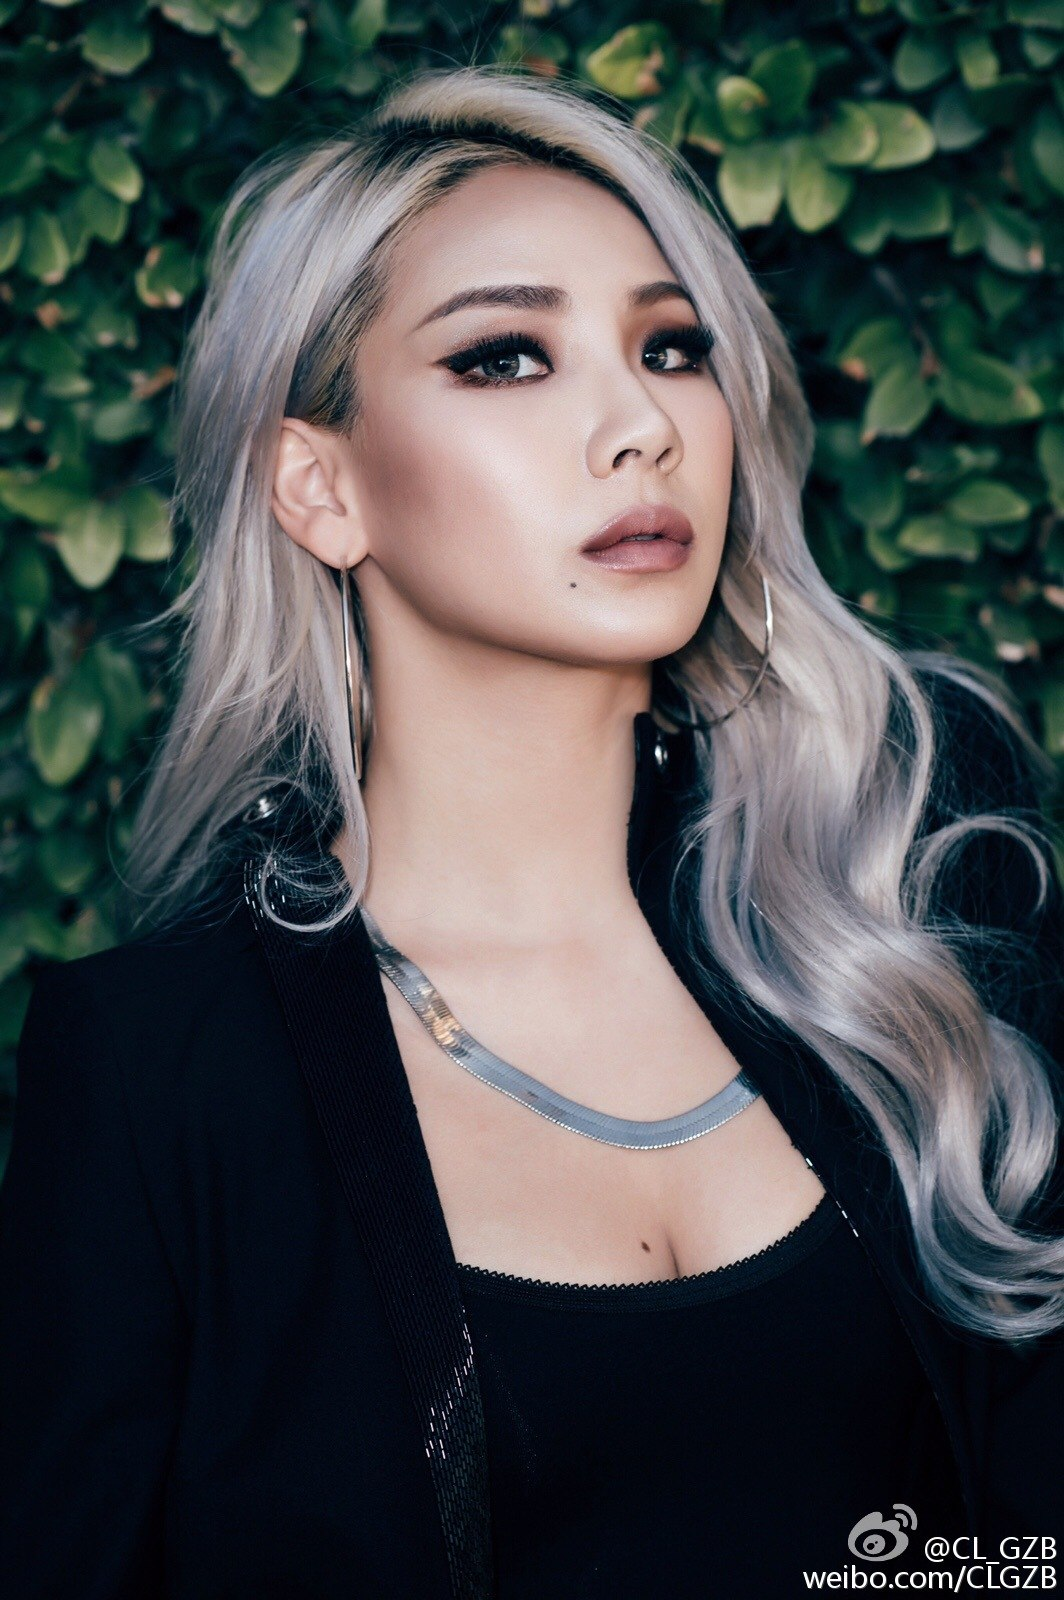 The baddest female is sharp, clean, and classy with her slight faded brow.